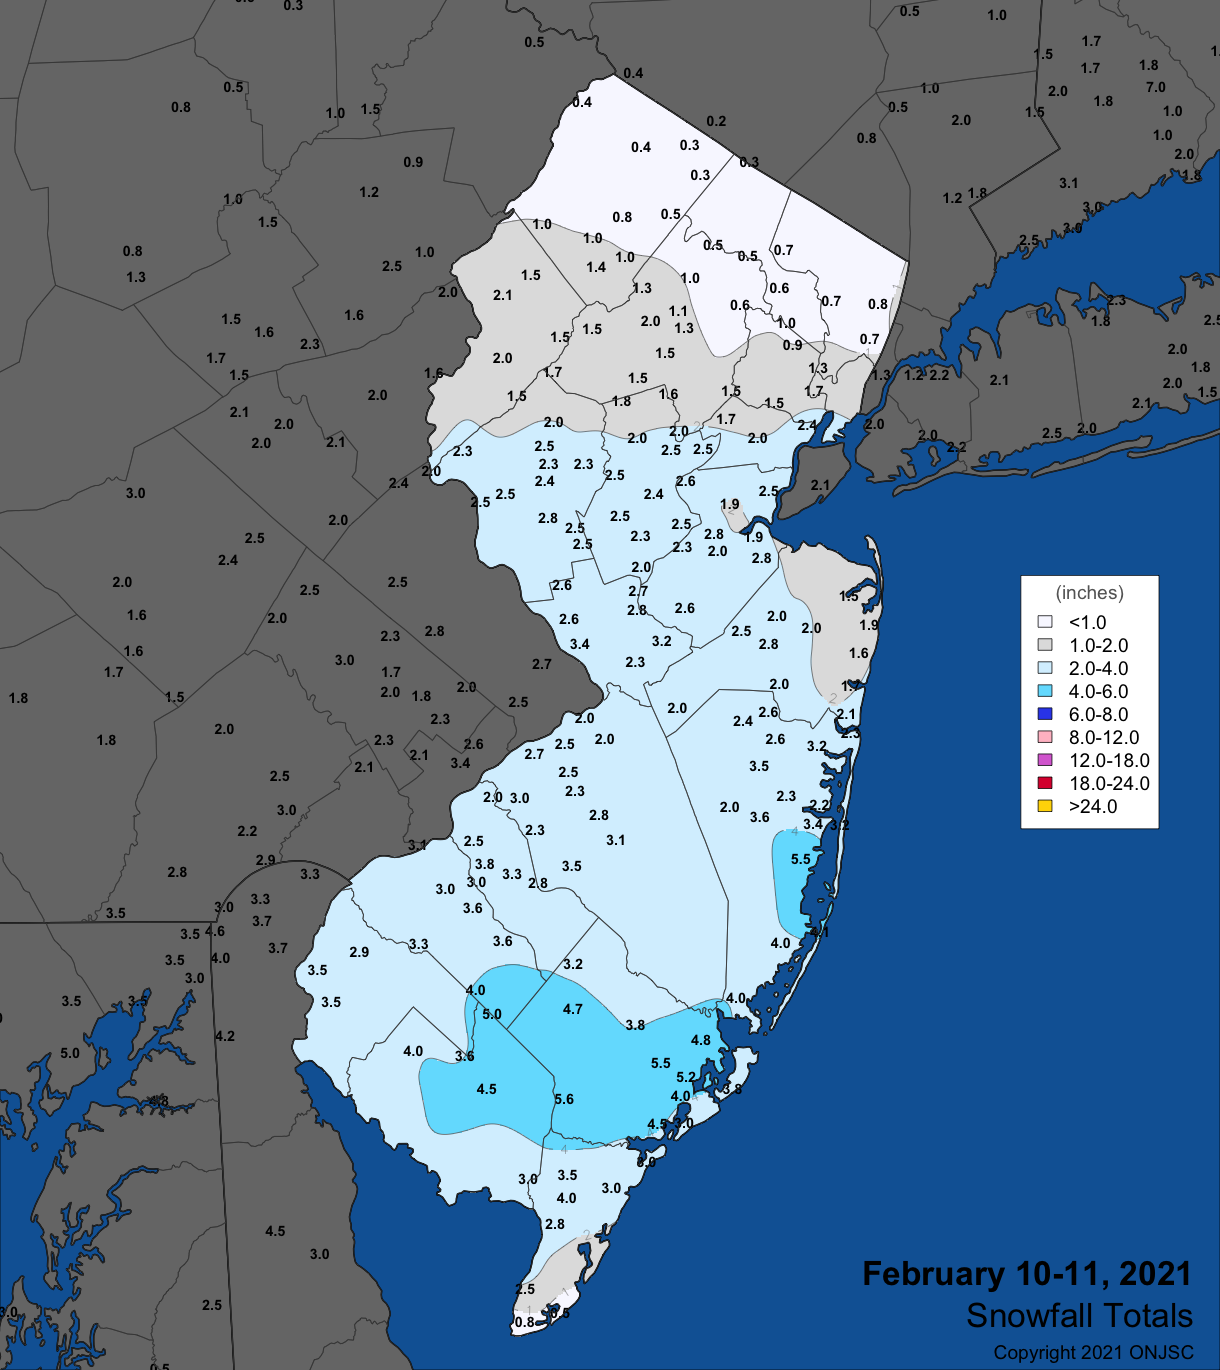 Snowfall map from the February 10th-11th winter storm